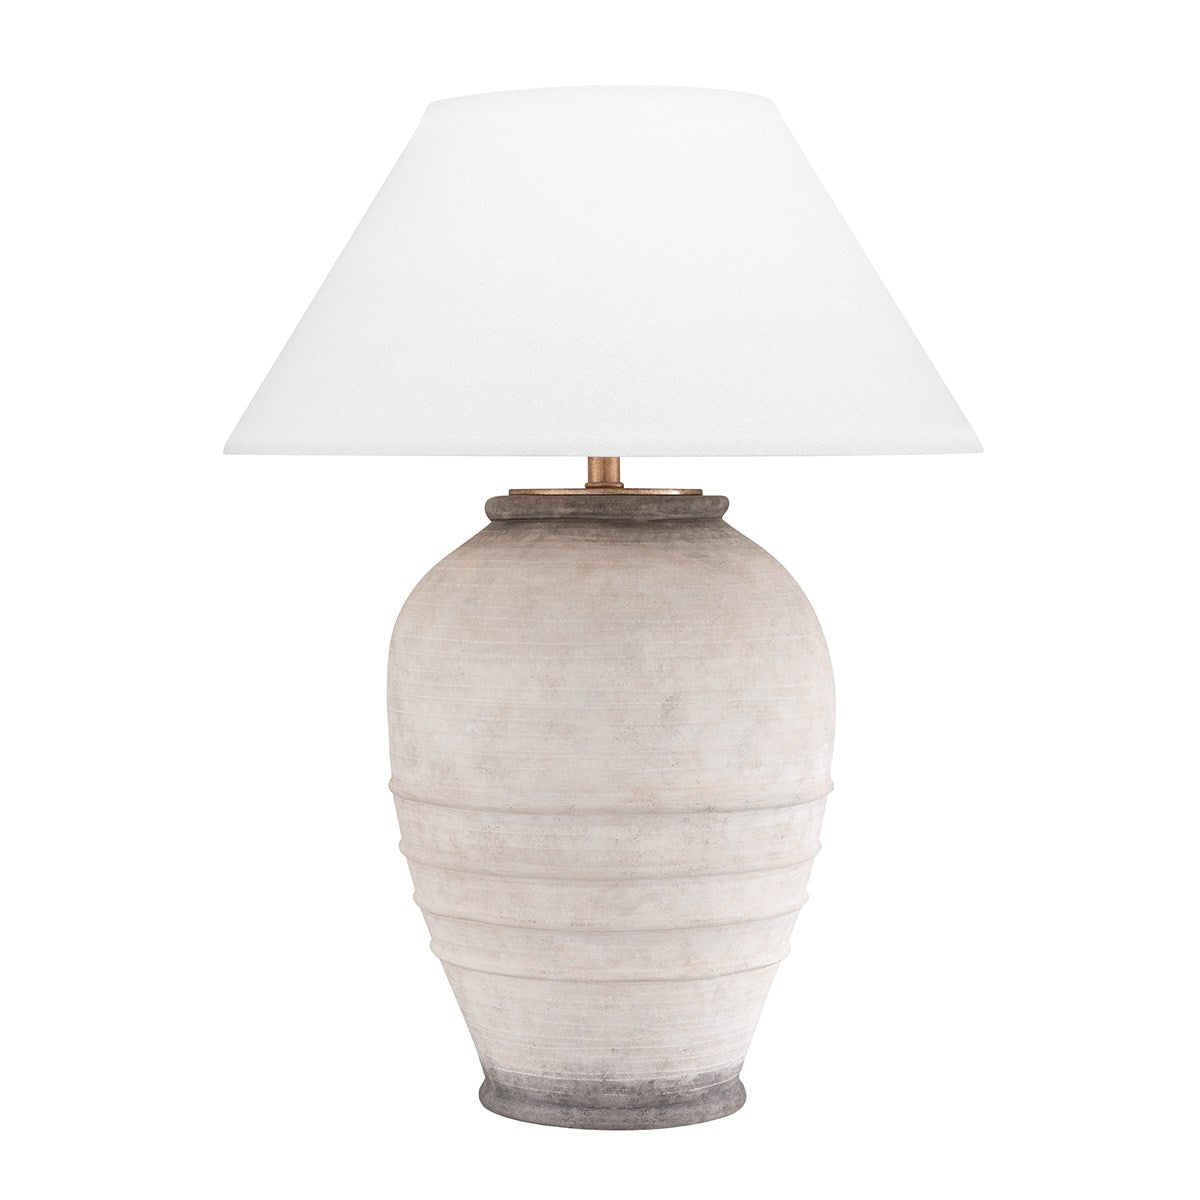 Decatur Table Lamp - Rug & Weave